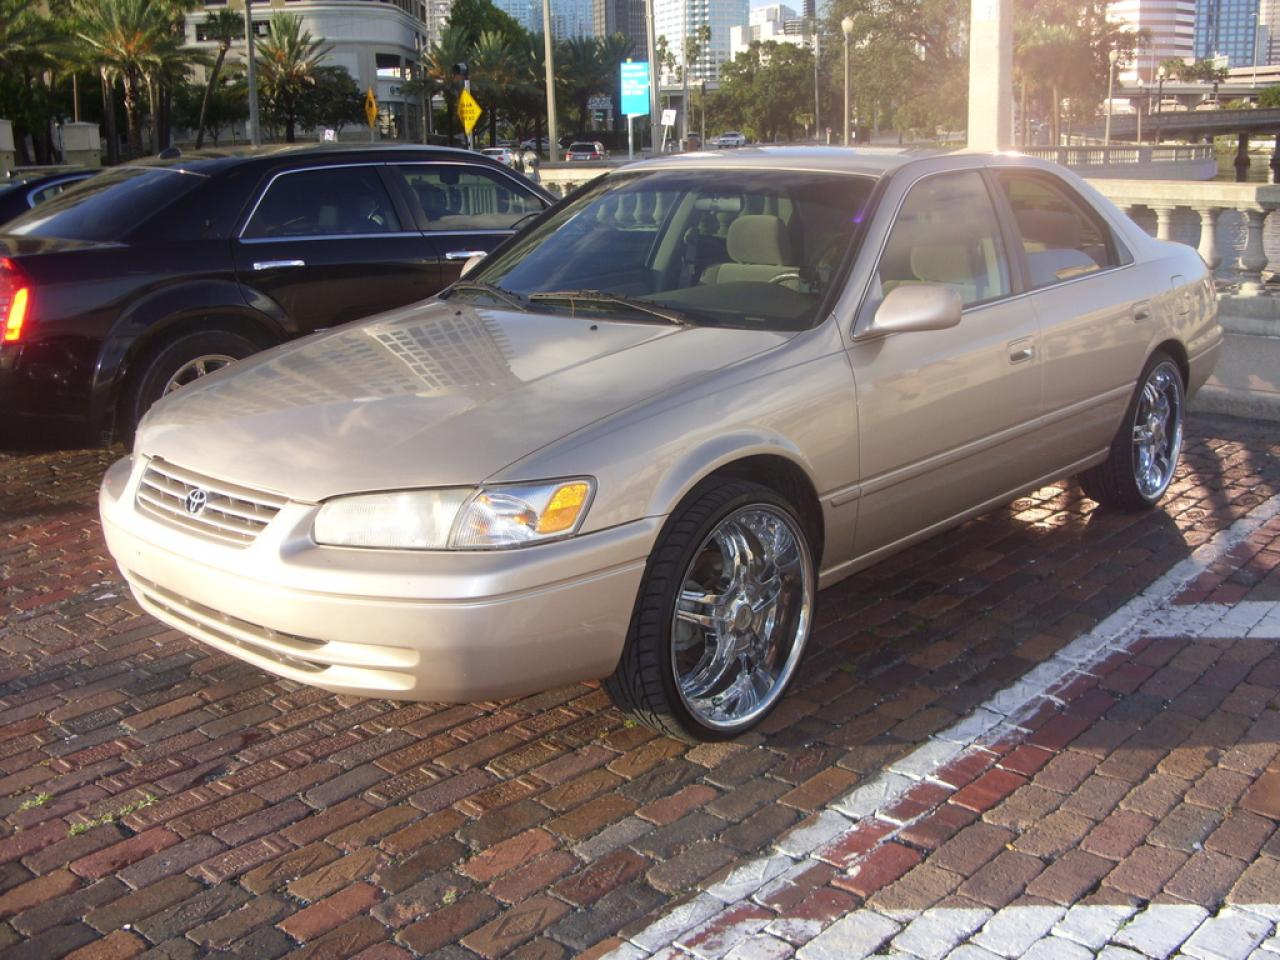 1999 Toyota Camry Information And Photos Zombiedrive